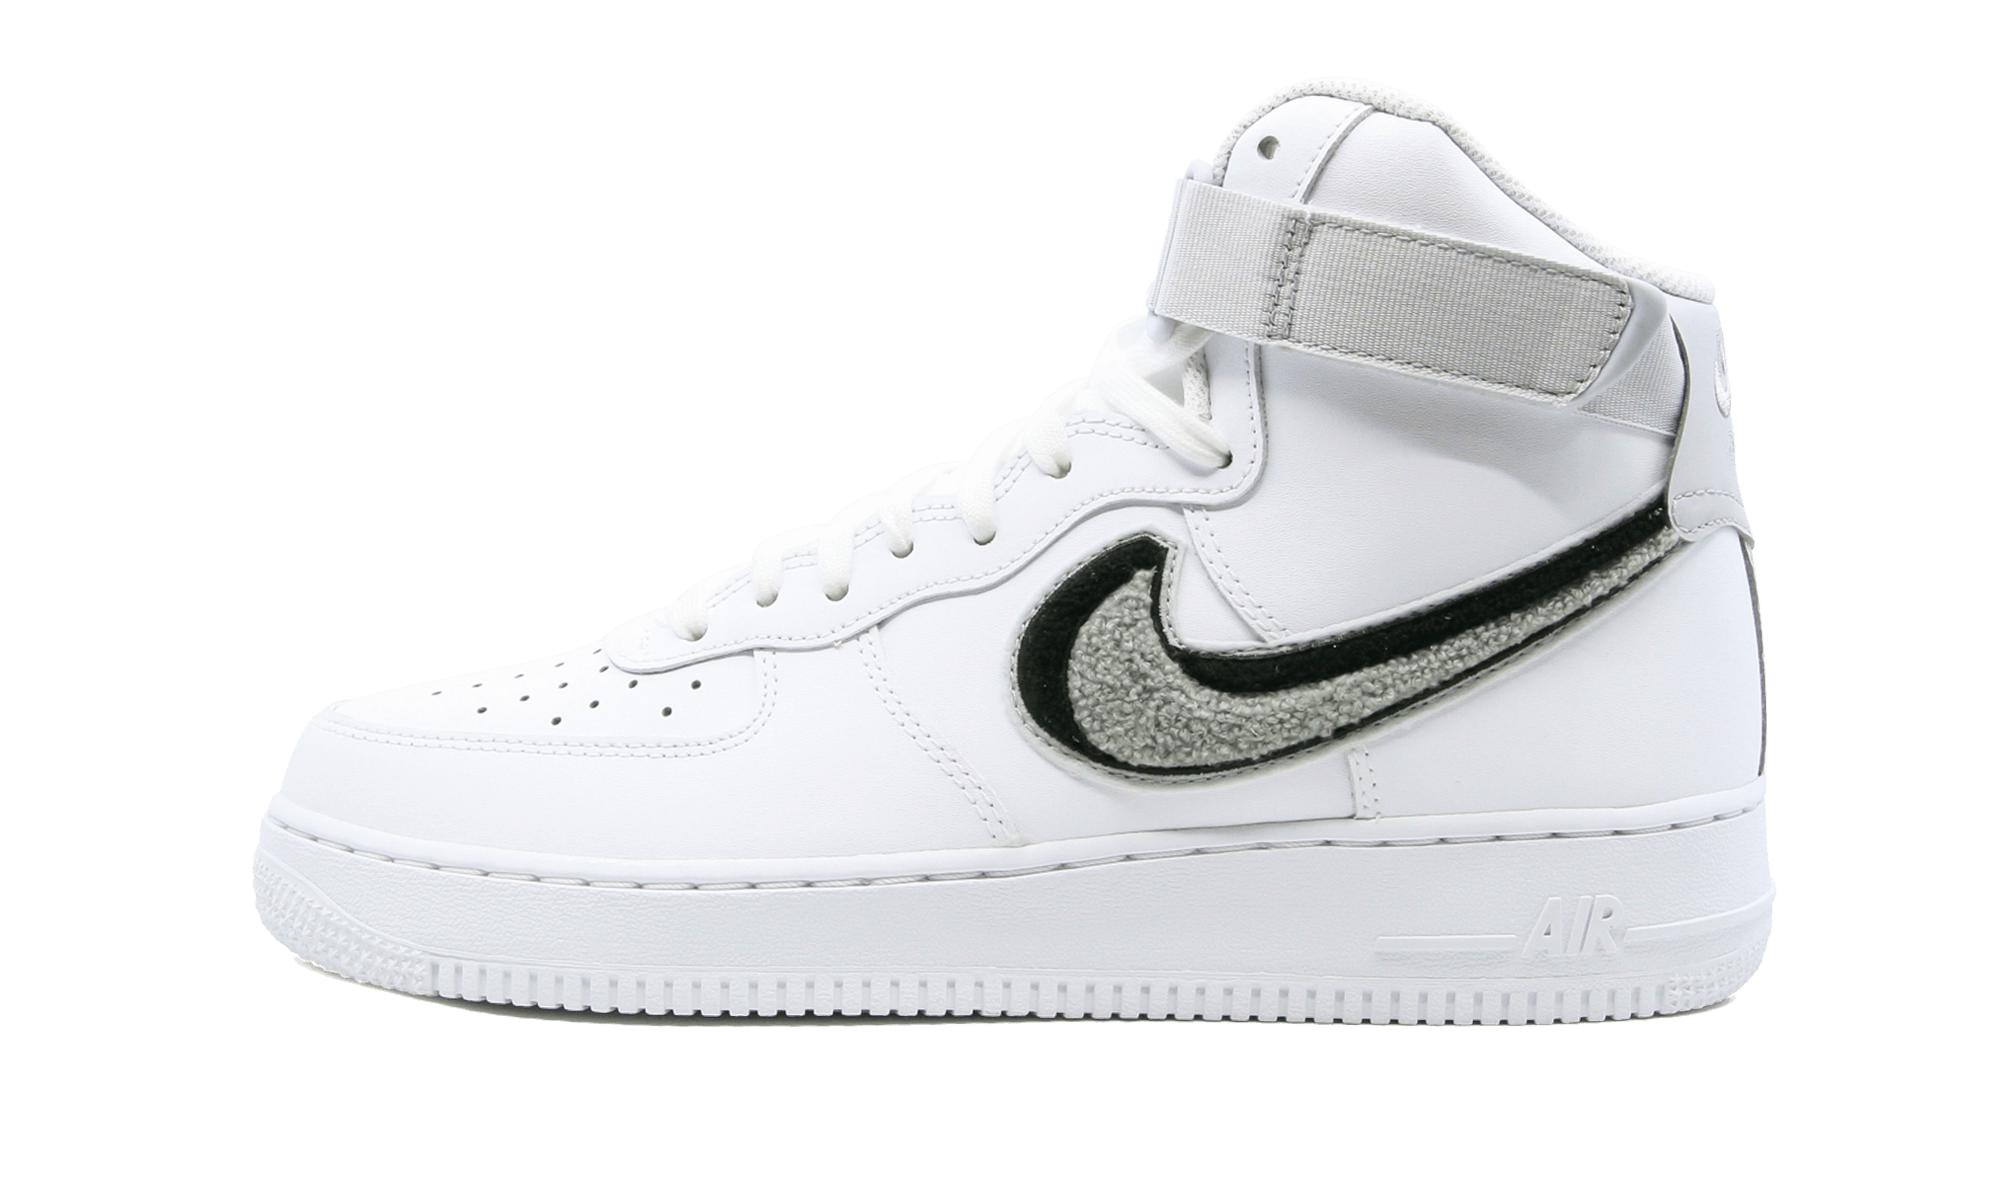 07 Air In Nike Lv8 White For 1 High Force Lyst Men pjqVSMGLUz